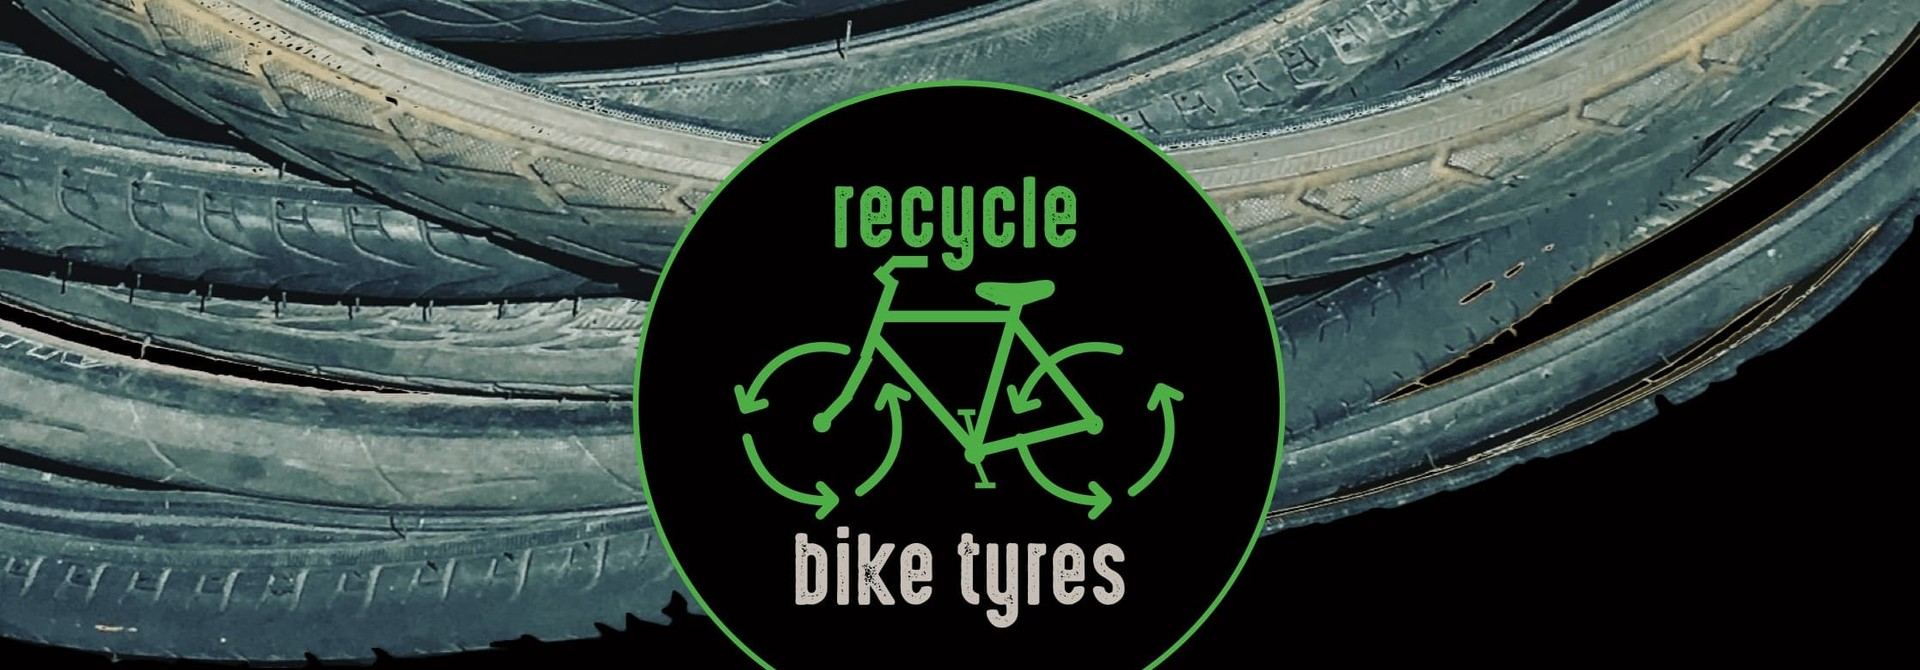 Bicycle Tyre Recycling